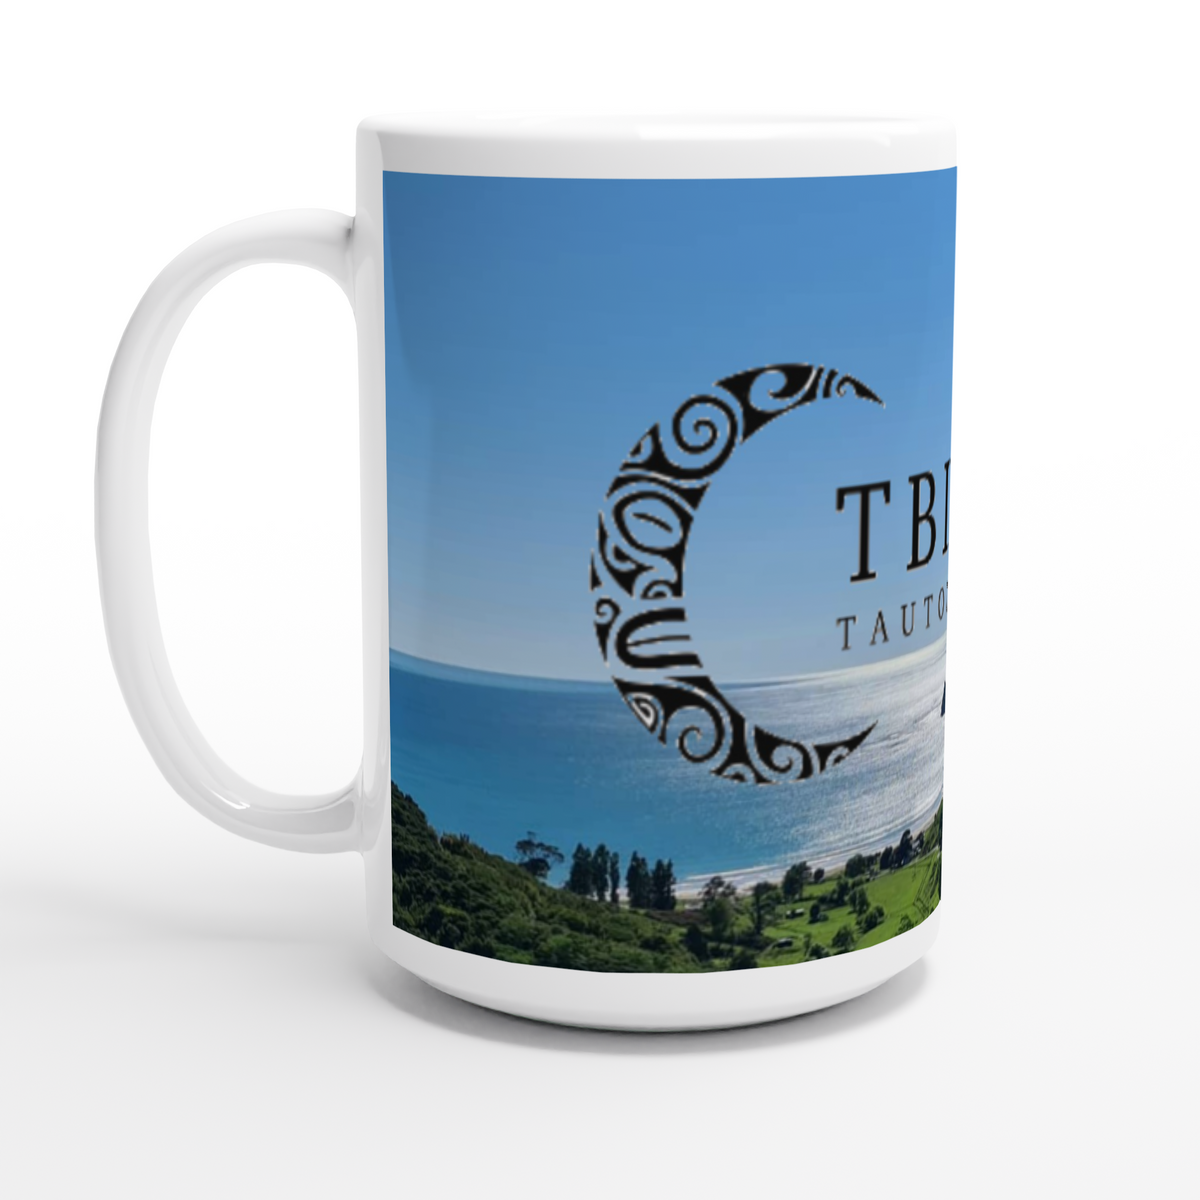 """Anaura Bay - TBI Tautoko"" White 15oz Ceramic Mug"